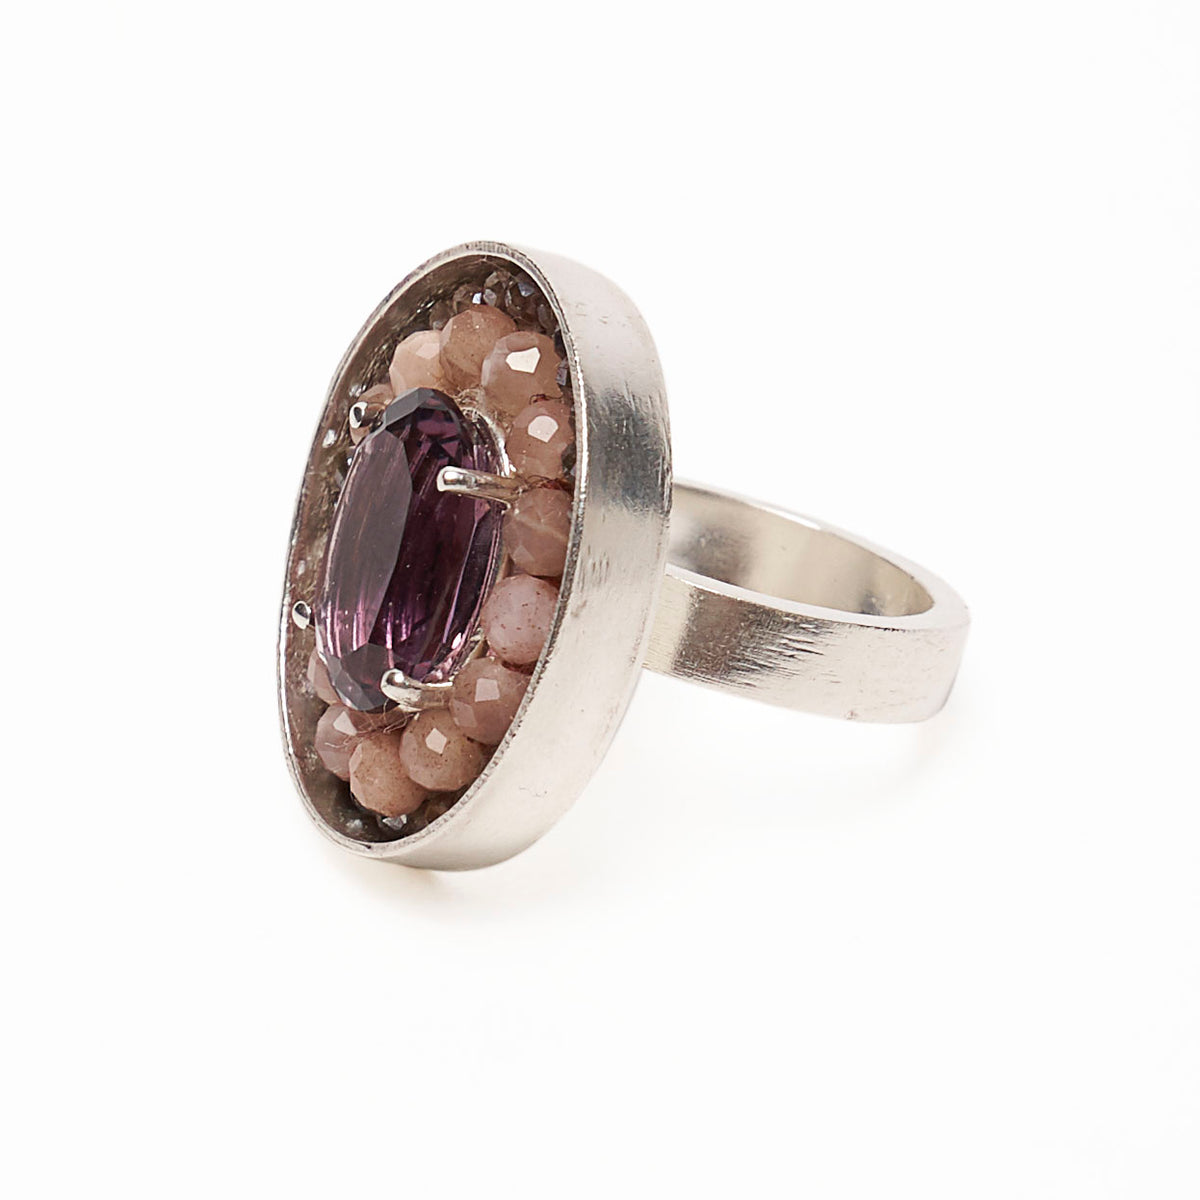 Amethyst, Coral, and Labradorite mosaic ring